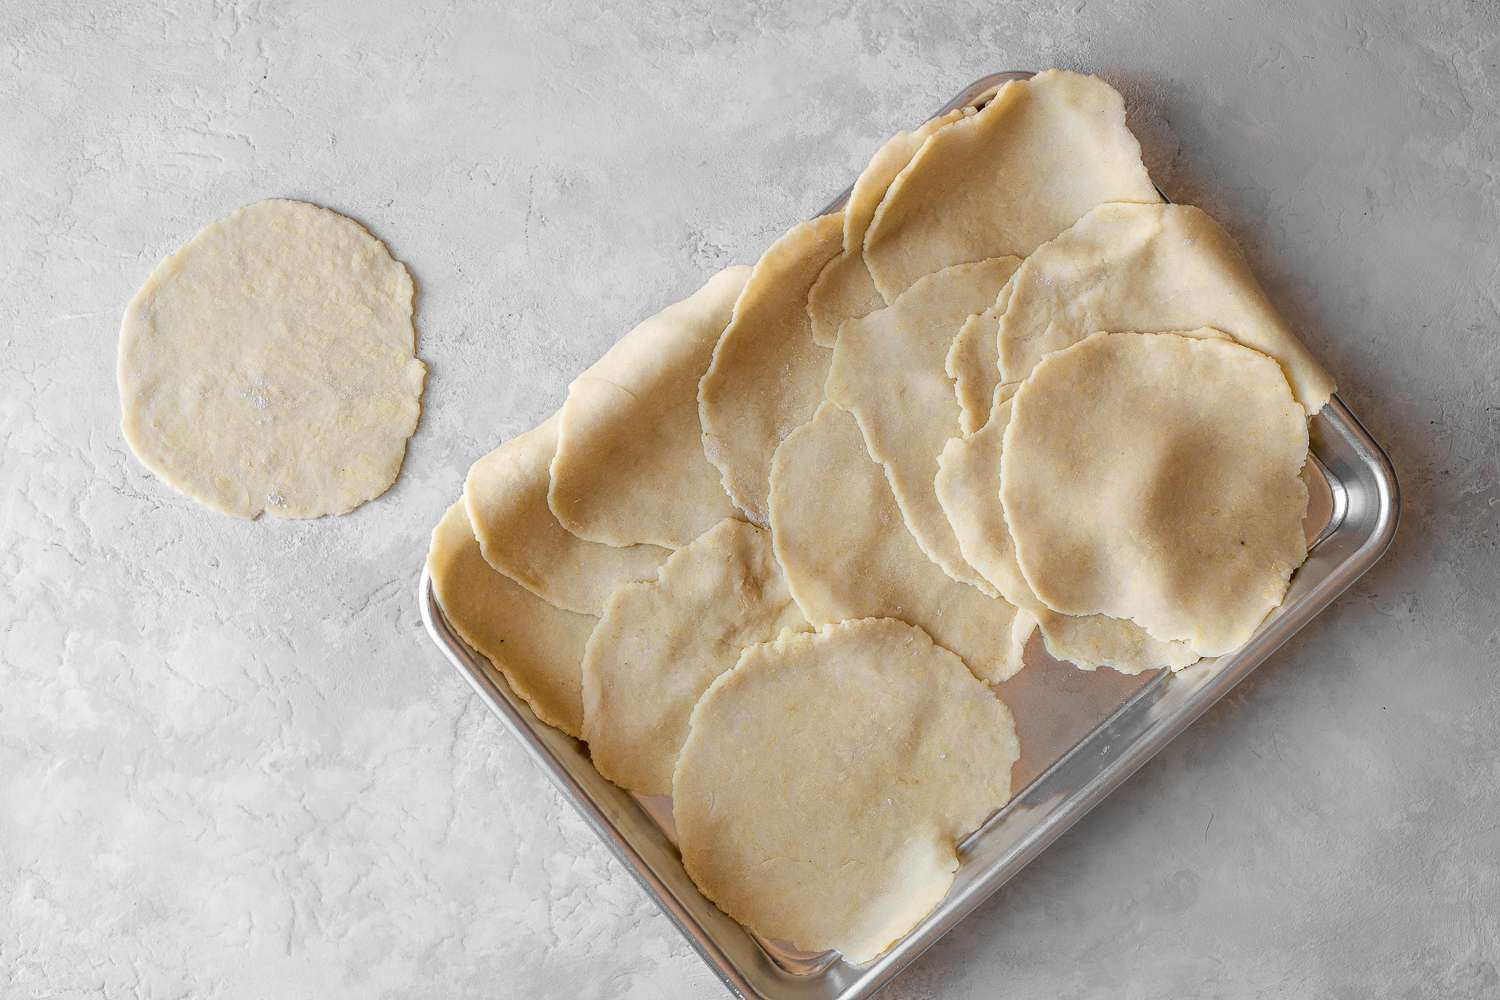 rolled out dough pieces